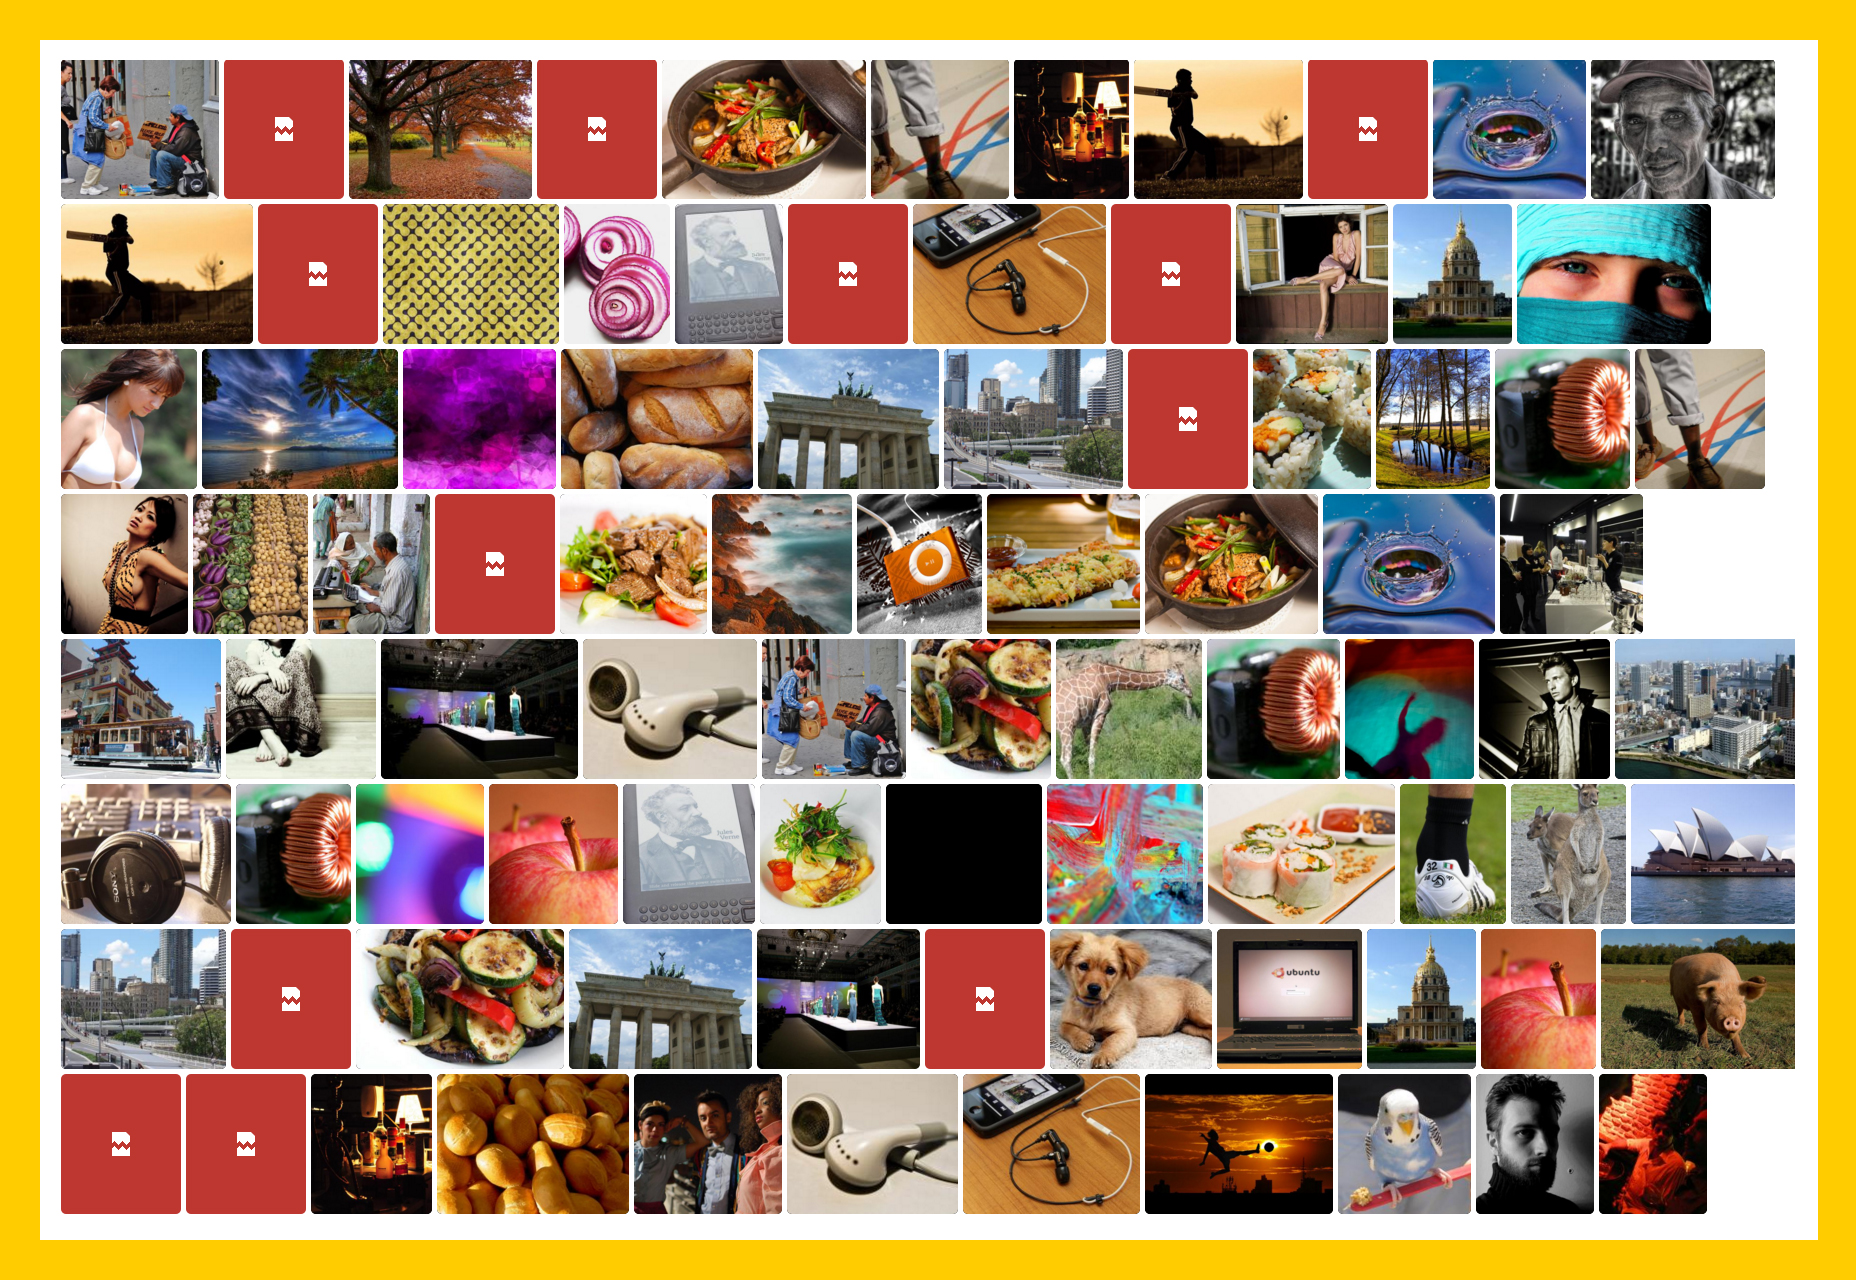 imagesloaded-javascript-image-load-consultor-library